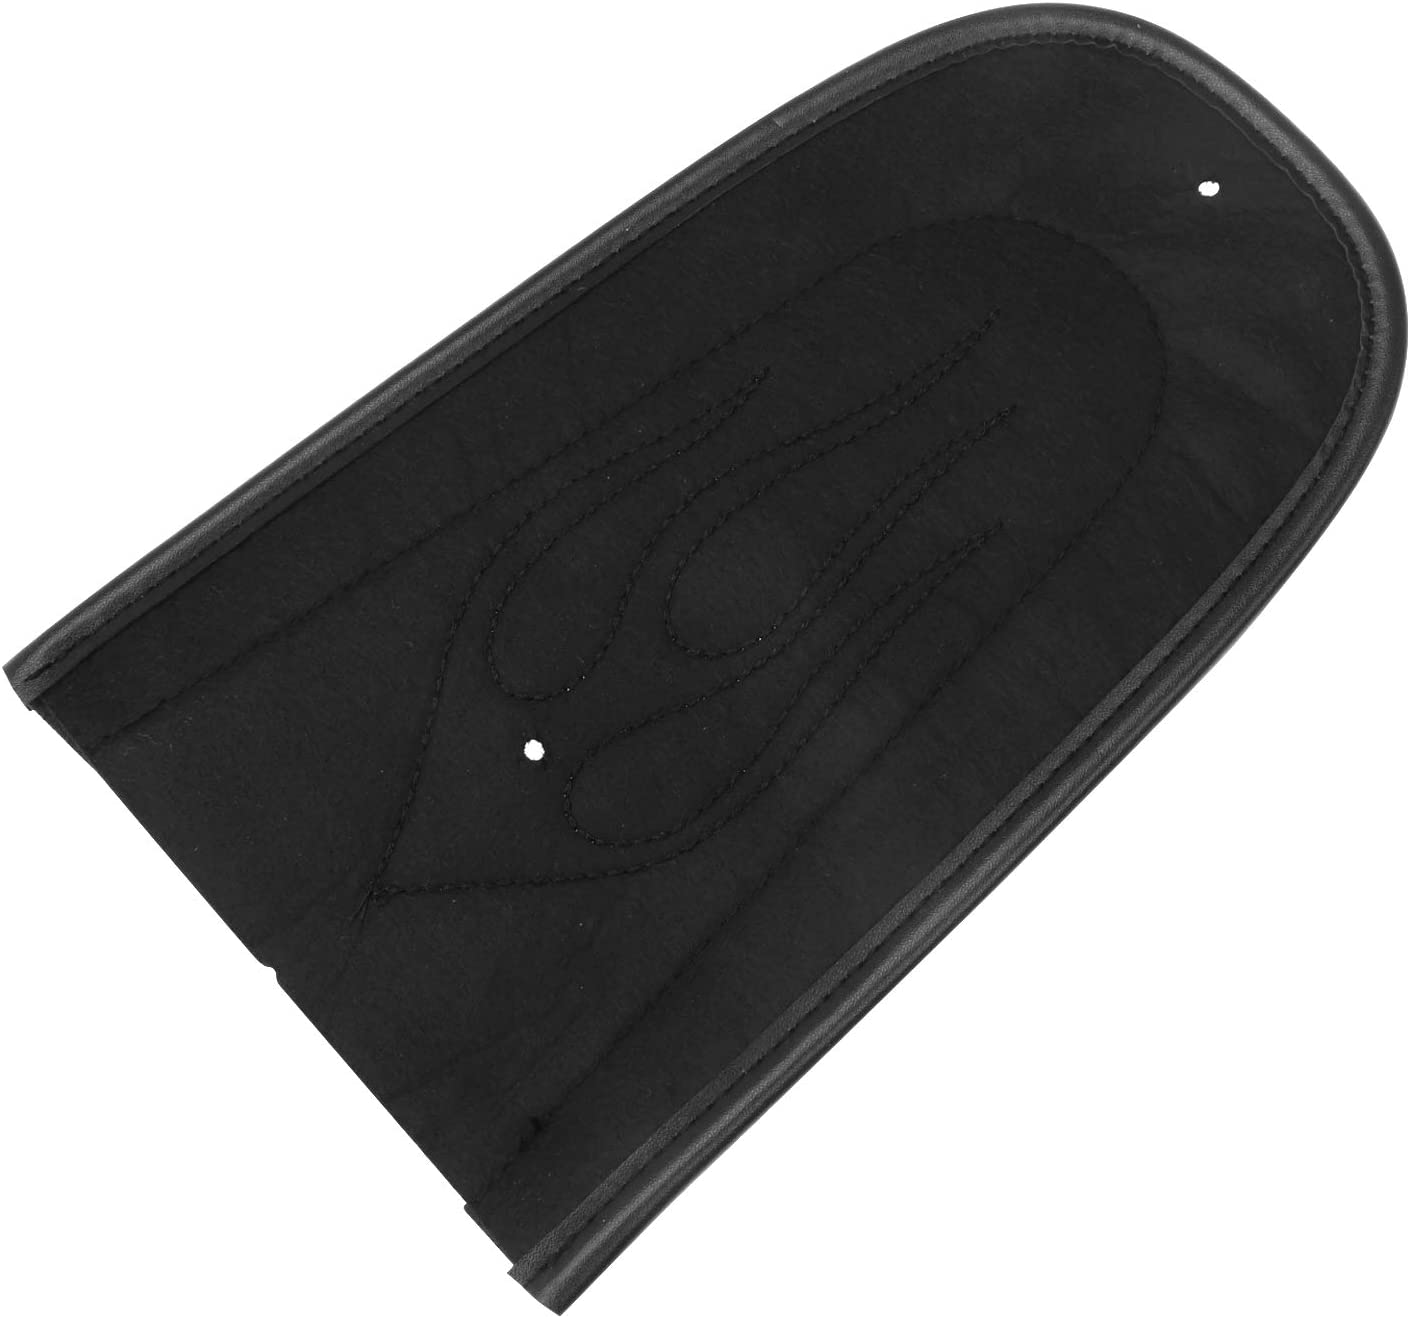 Black Flame Rear Fender Bib For Solo Seat For Harley Davidson Sportsters XL 883 1200 2004-2016